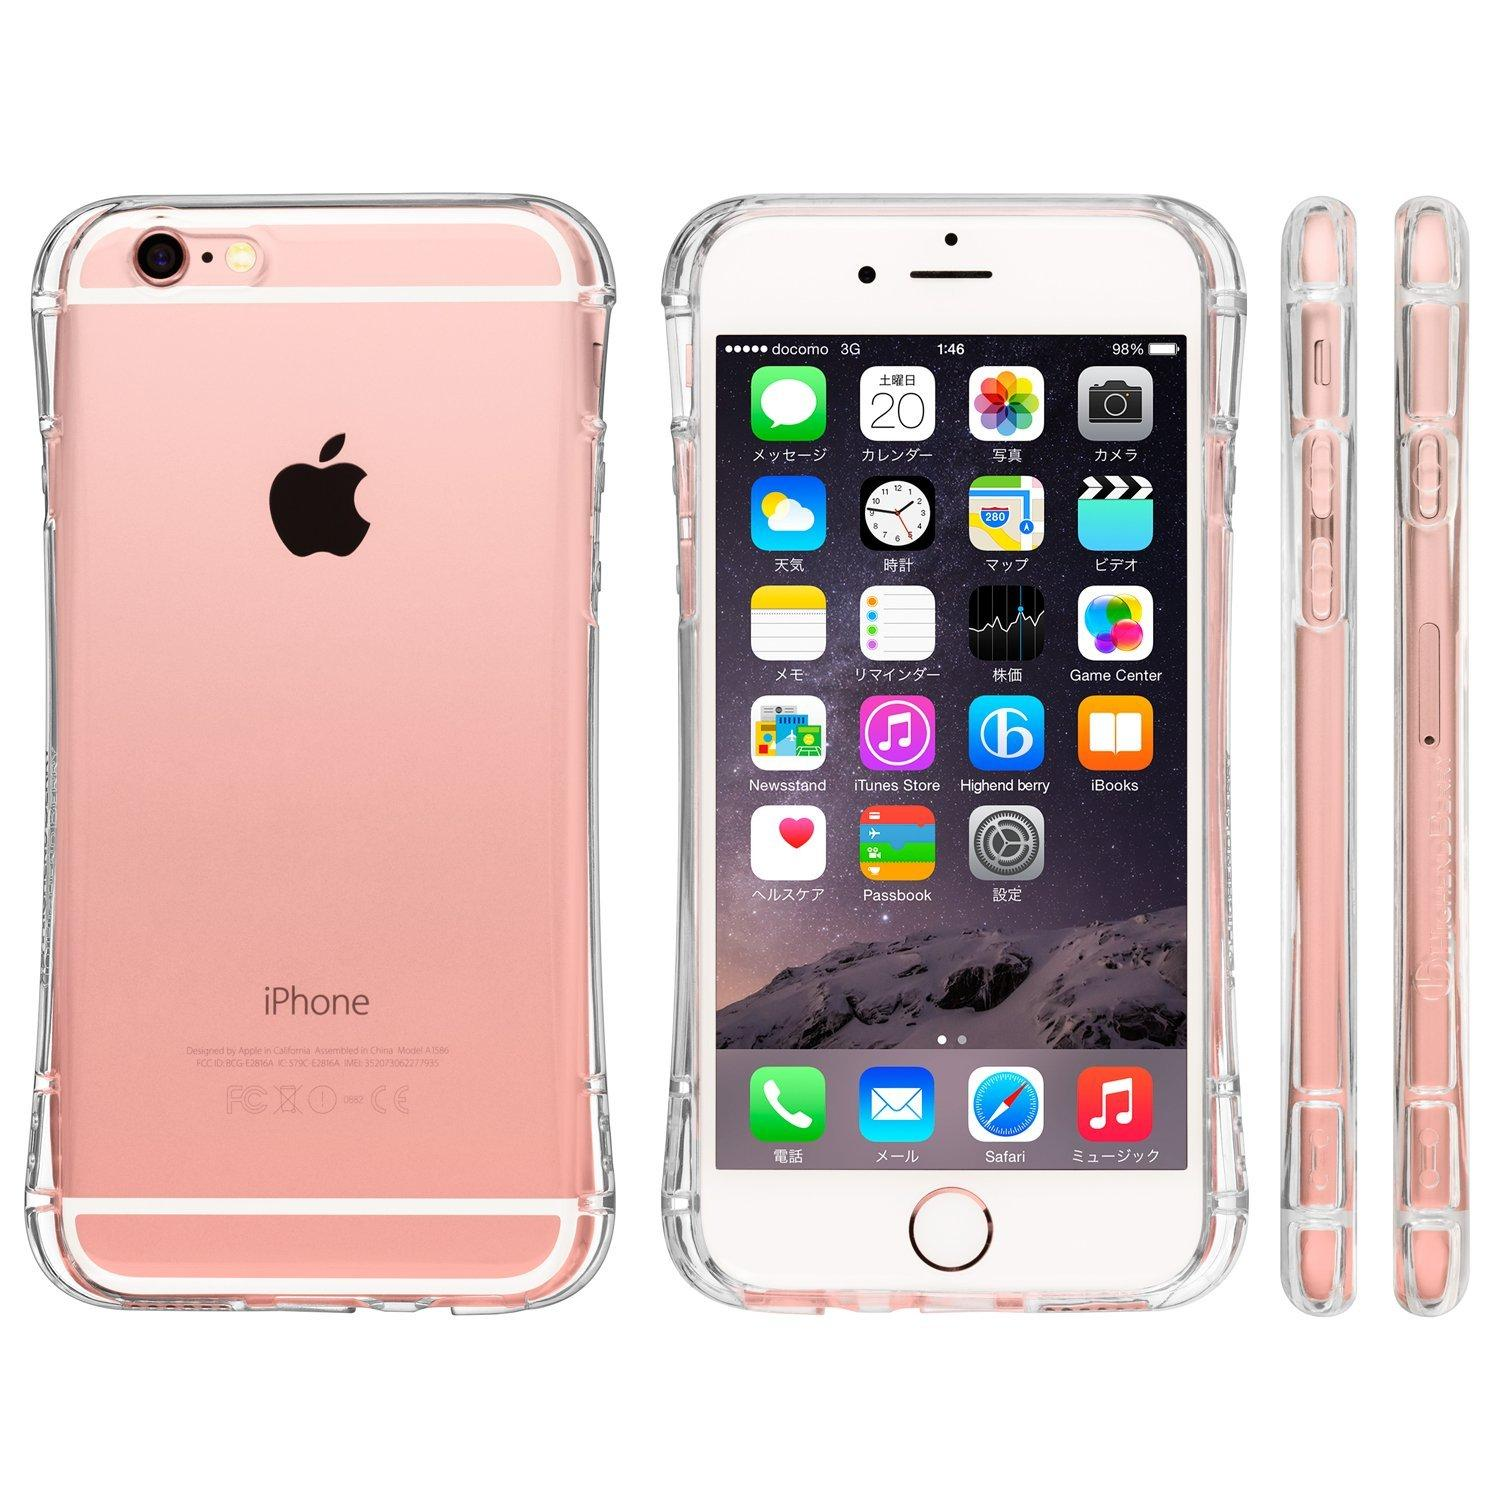 $7.99 iPhone 6/6s Highend Berry Original Soft TPU Clear Arc Case with Protective Caps